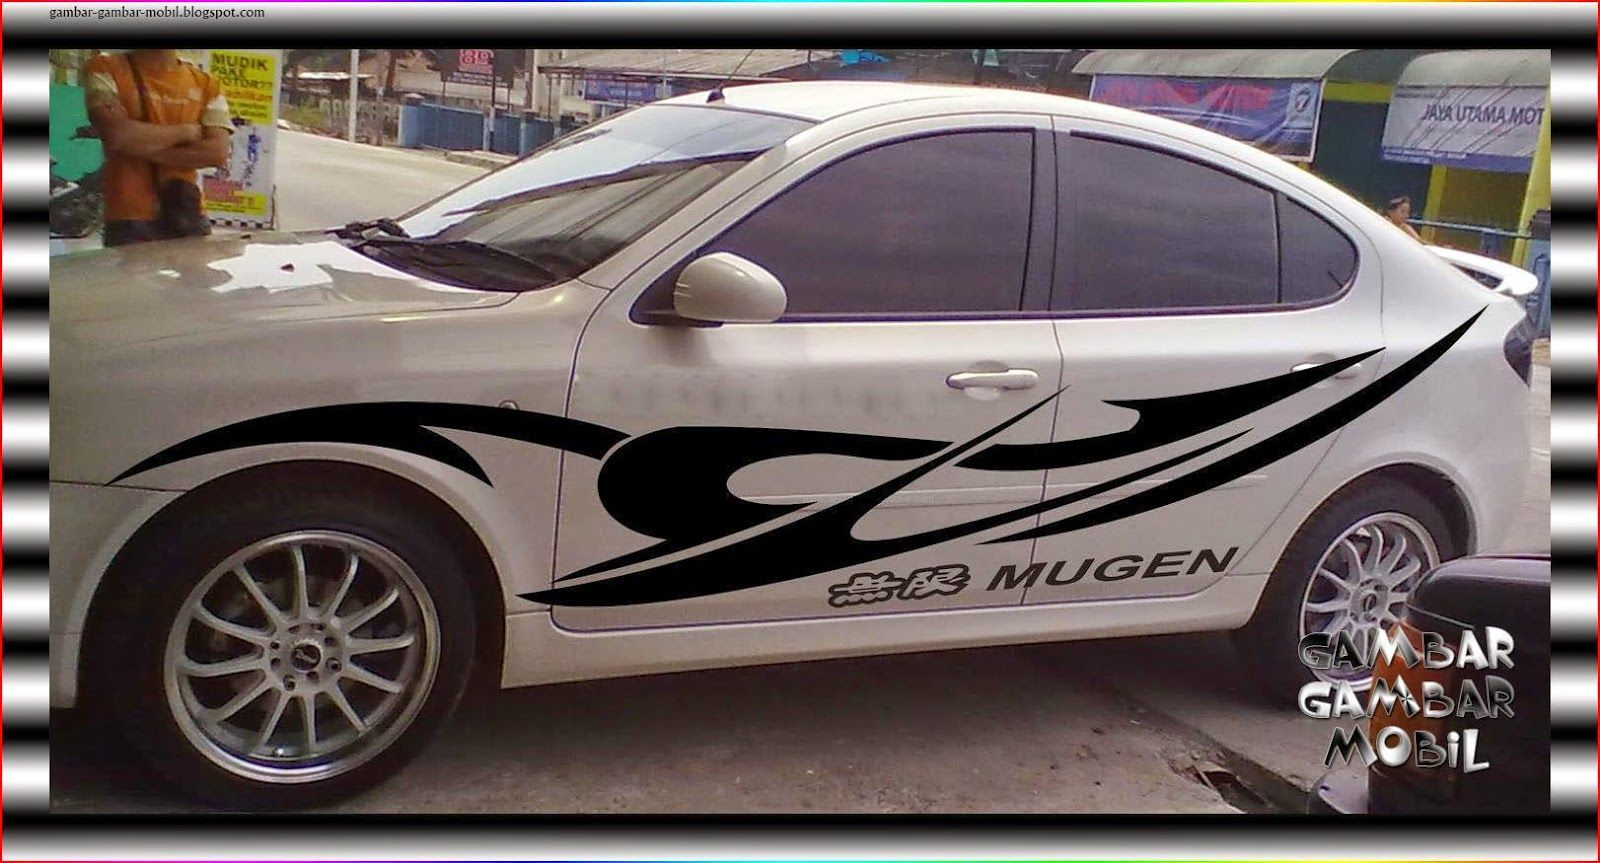 Foto Striping Mobil Sedan